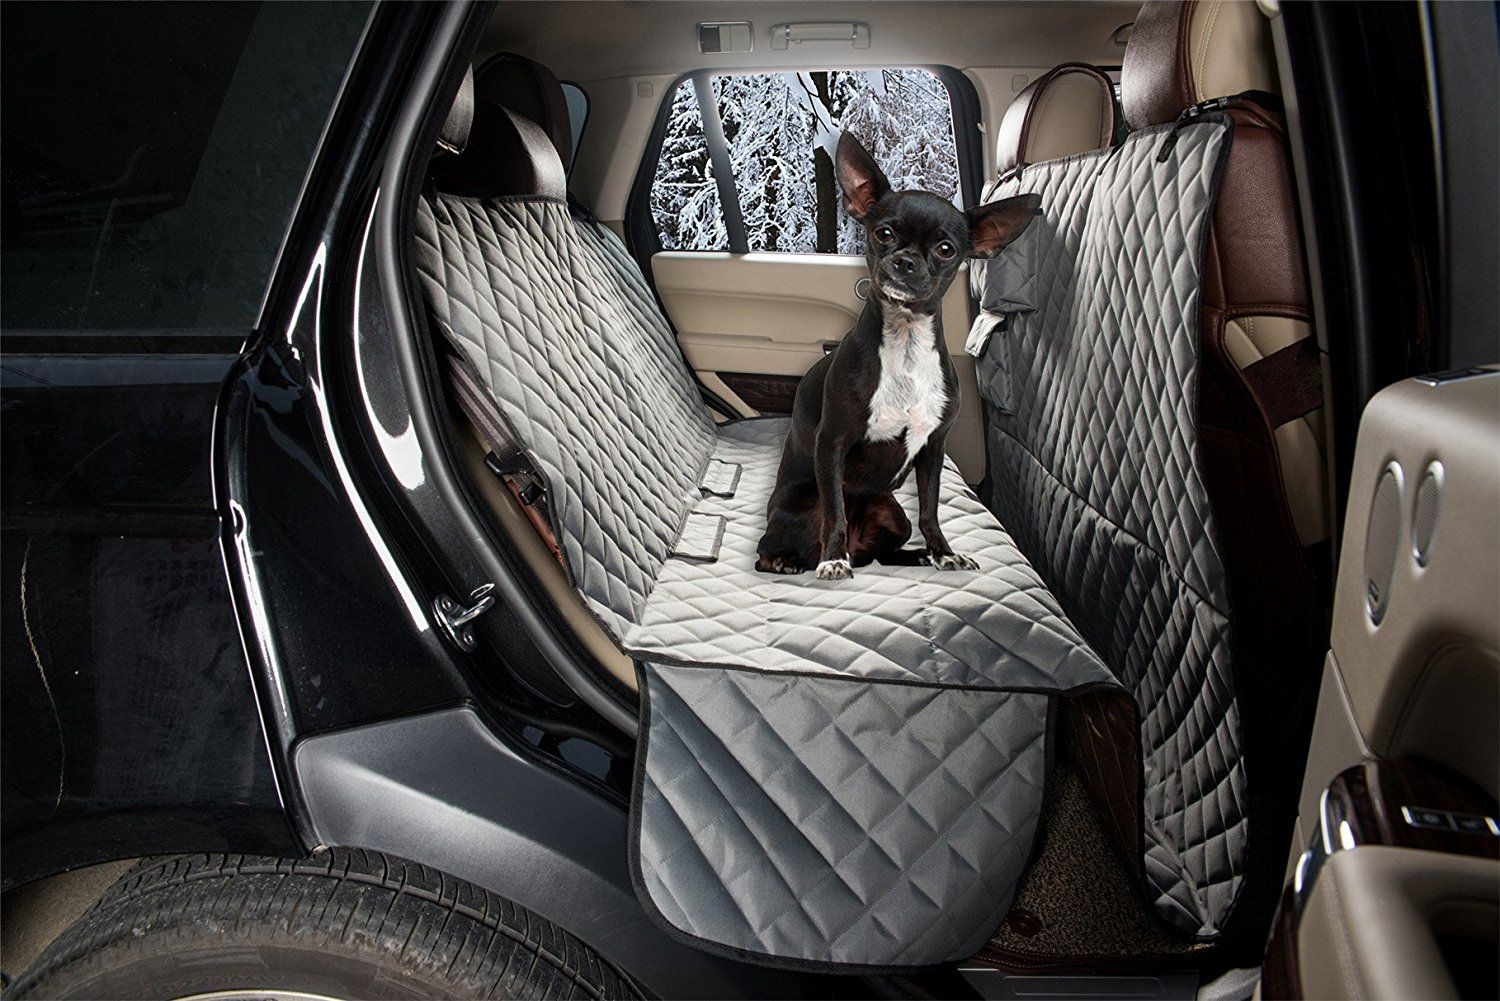 Zq Waterproof All Coverage Padded Style Anti Slip Hammock Dog Car Seat Cover Seat Protector For Pets Trust Me T Dog Car Seat Cover Dog Car Seats Car Seats